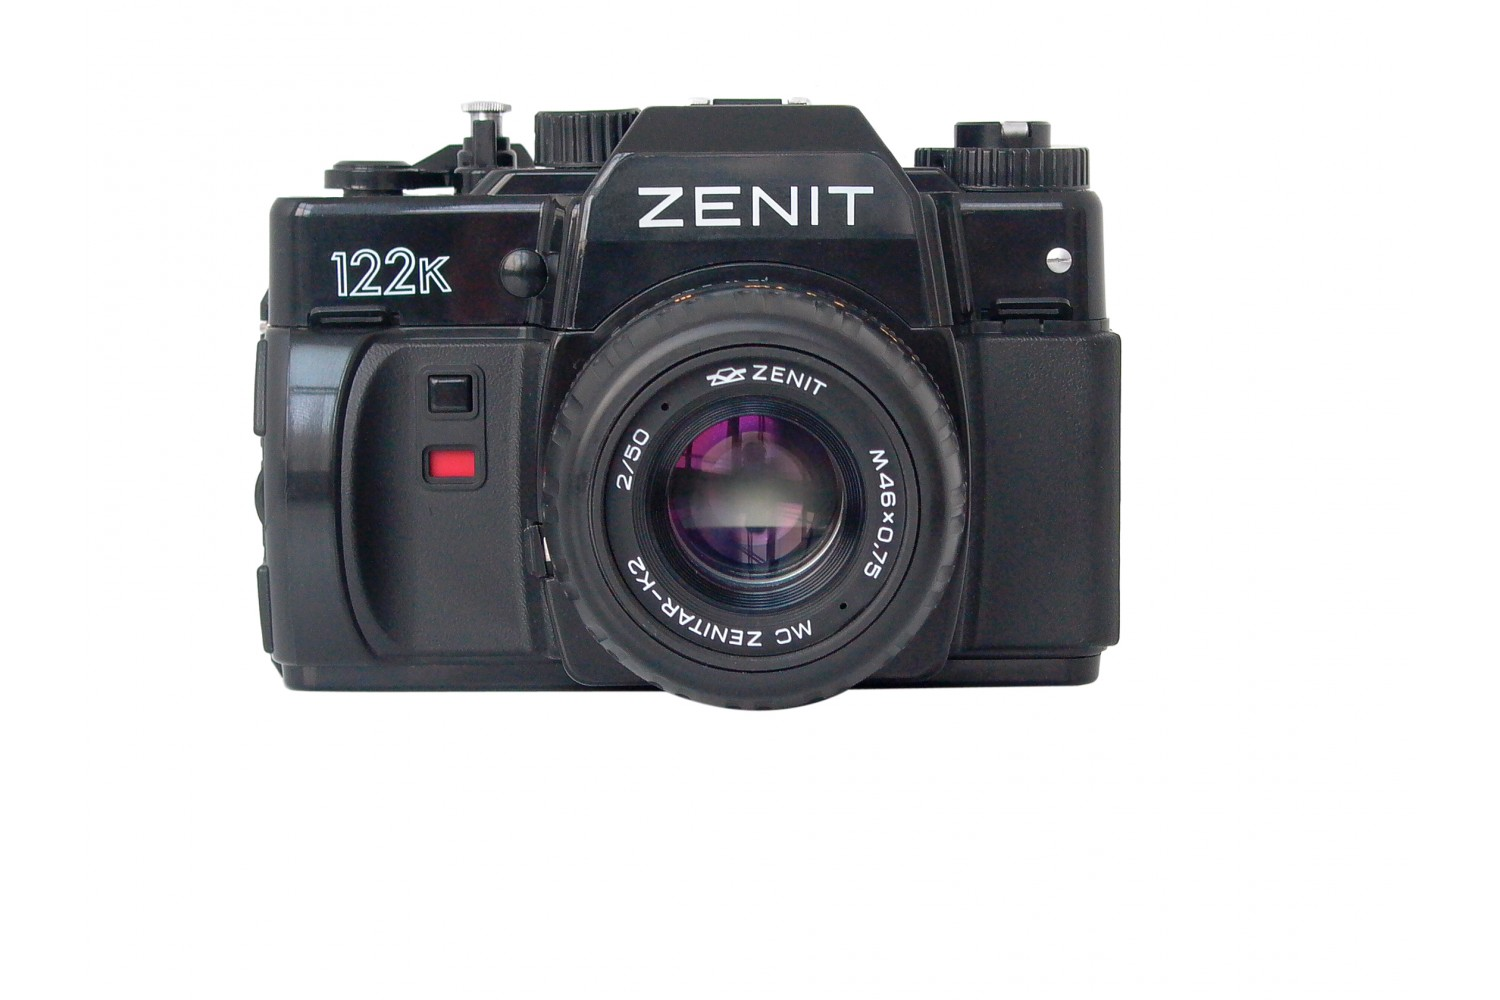 Marvellous In Snapchat Rifle What Does Slr Stand Zenit Slr Zenit Slr Lomography Shop What Does Slr Stand dpreview What Does Slr Stand For